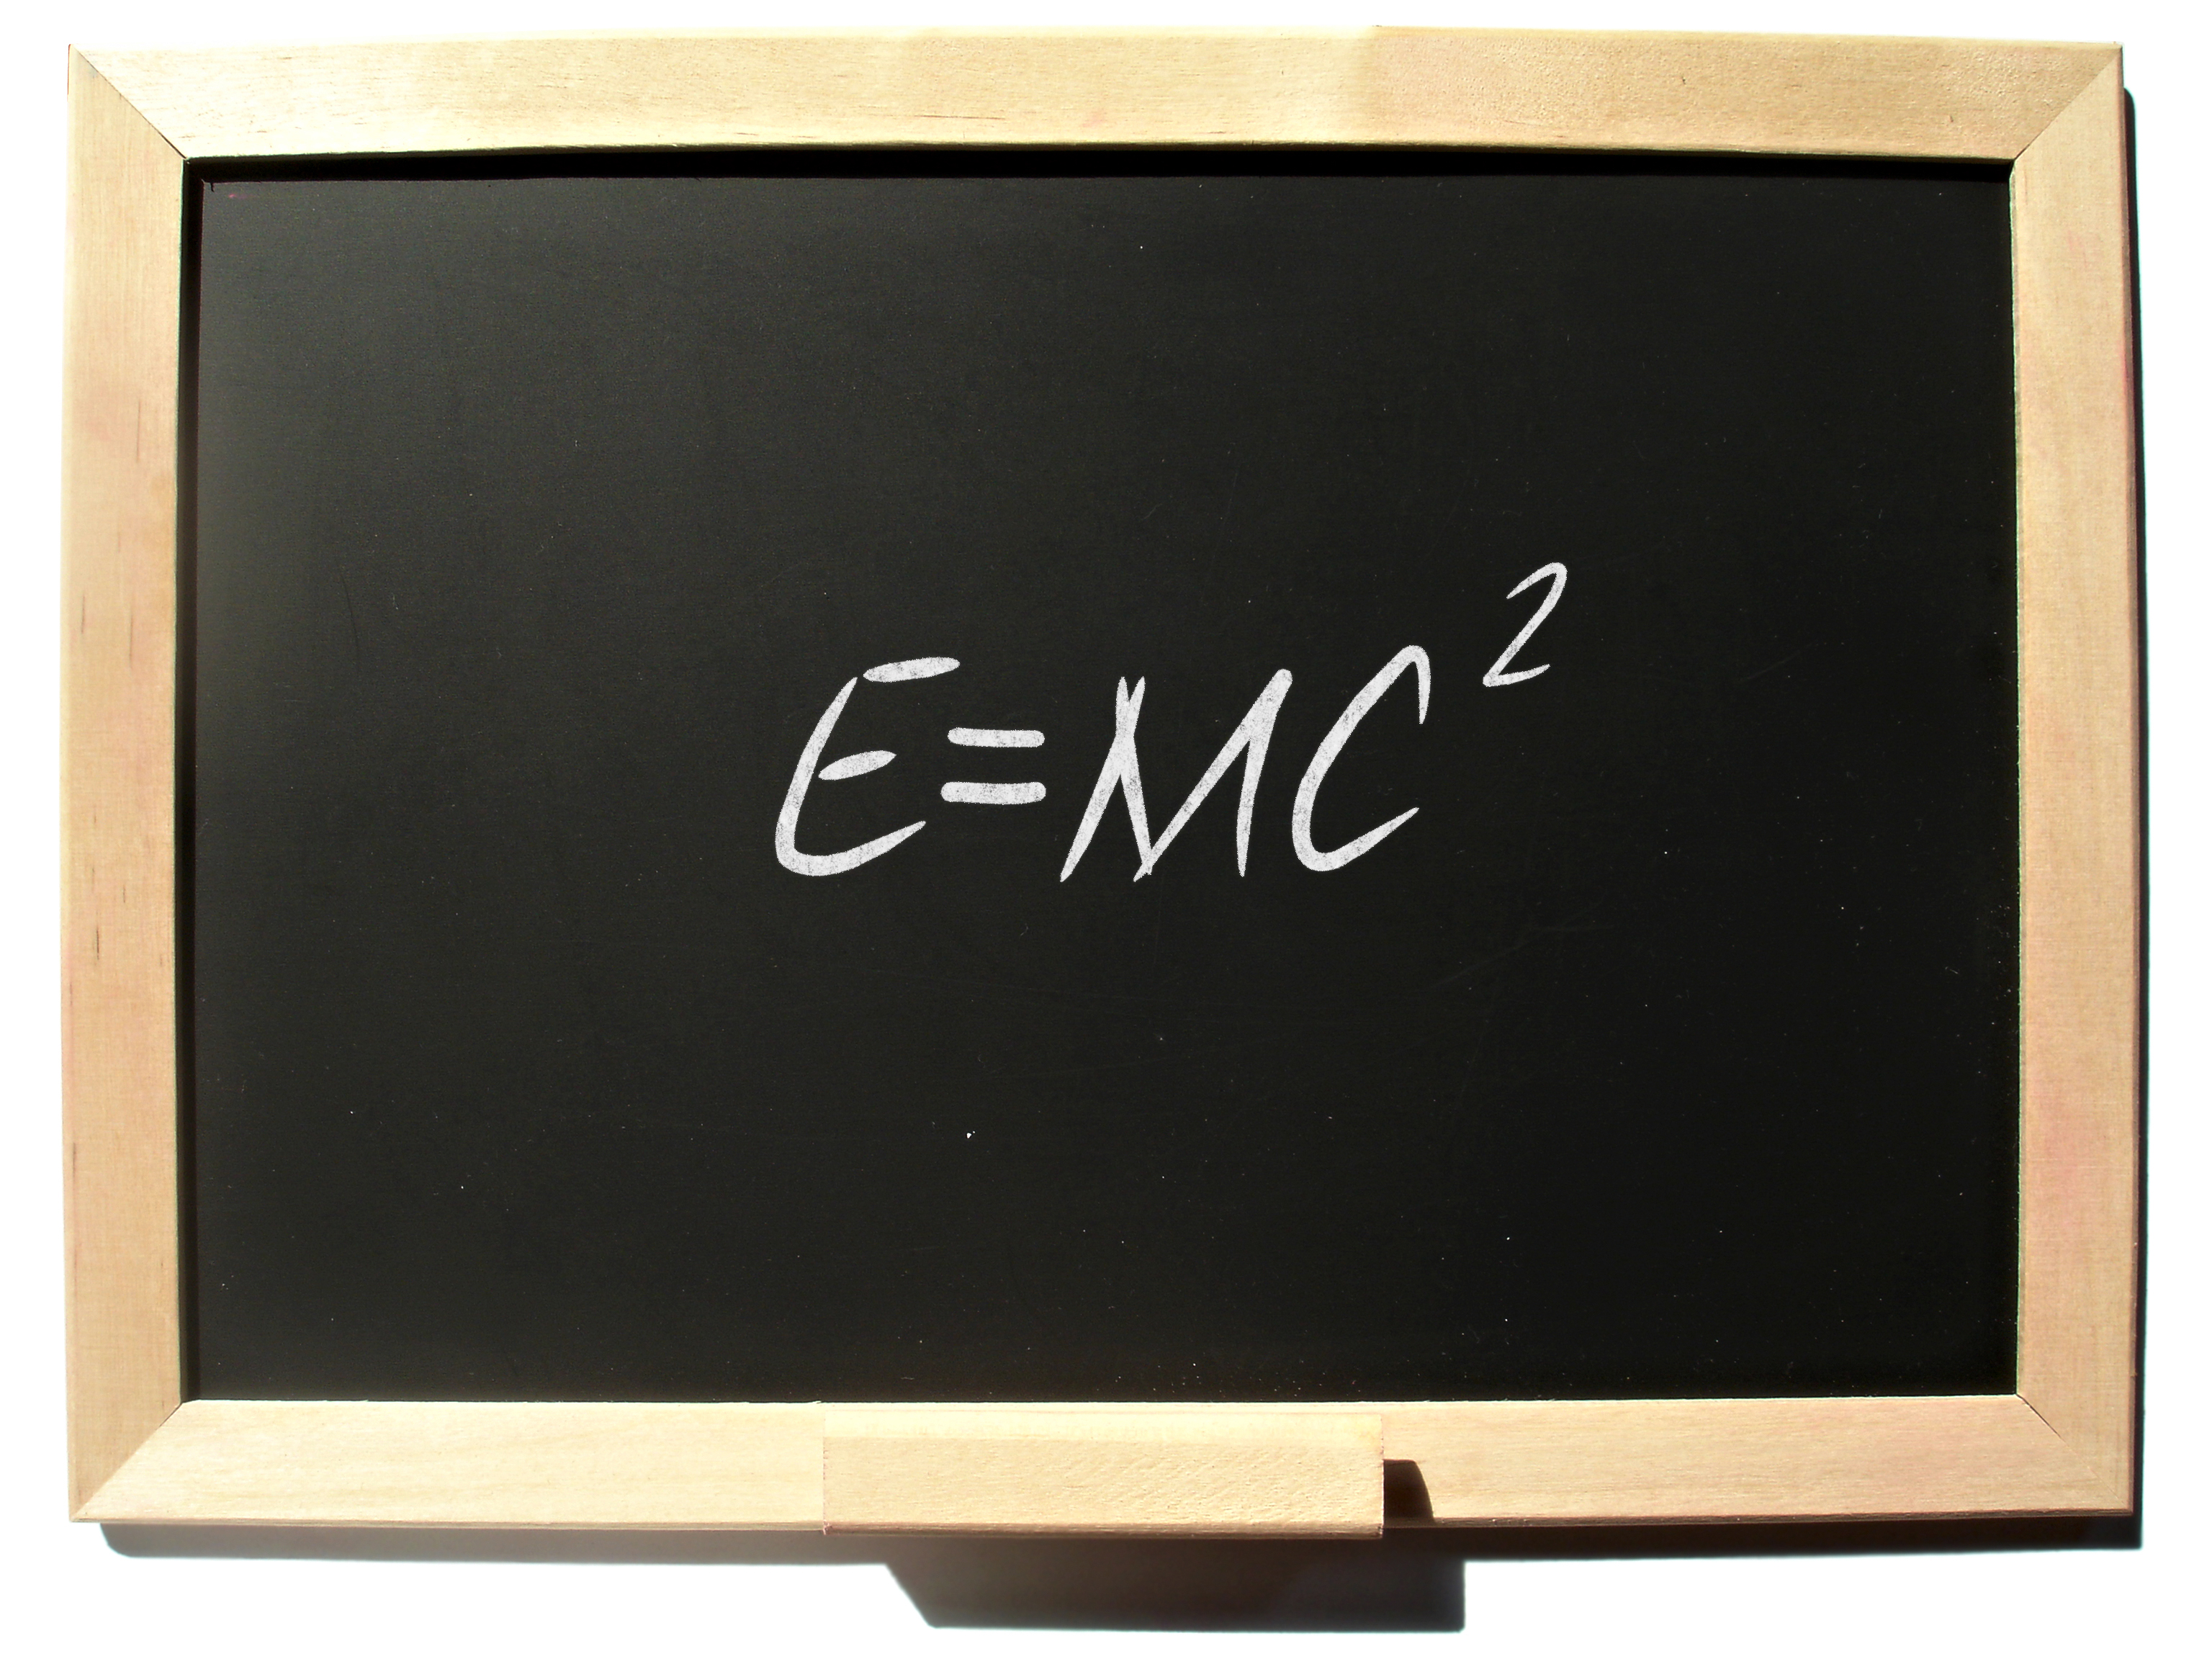 A picture of a chalkboard with E=MC2 written on it